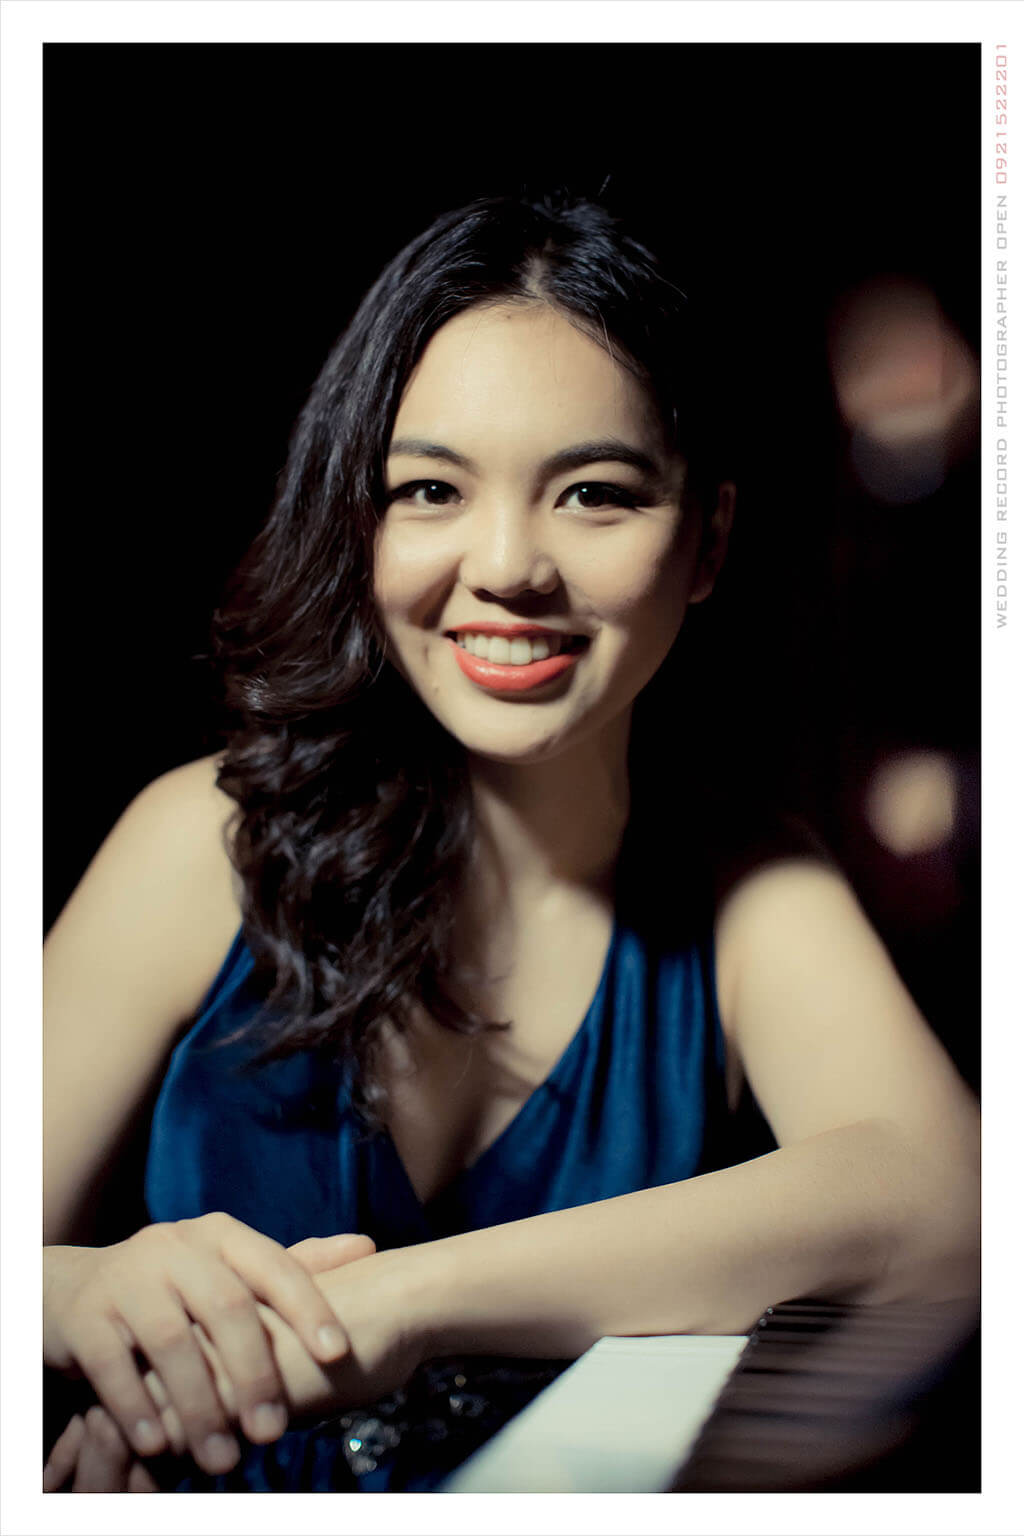 La pianiste Eva Yulin Shen (Photo: Courtoisie)